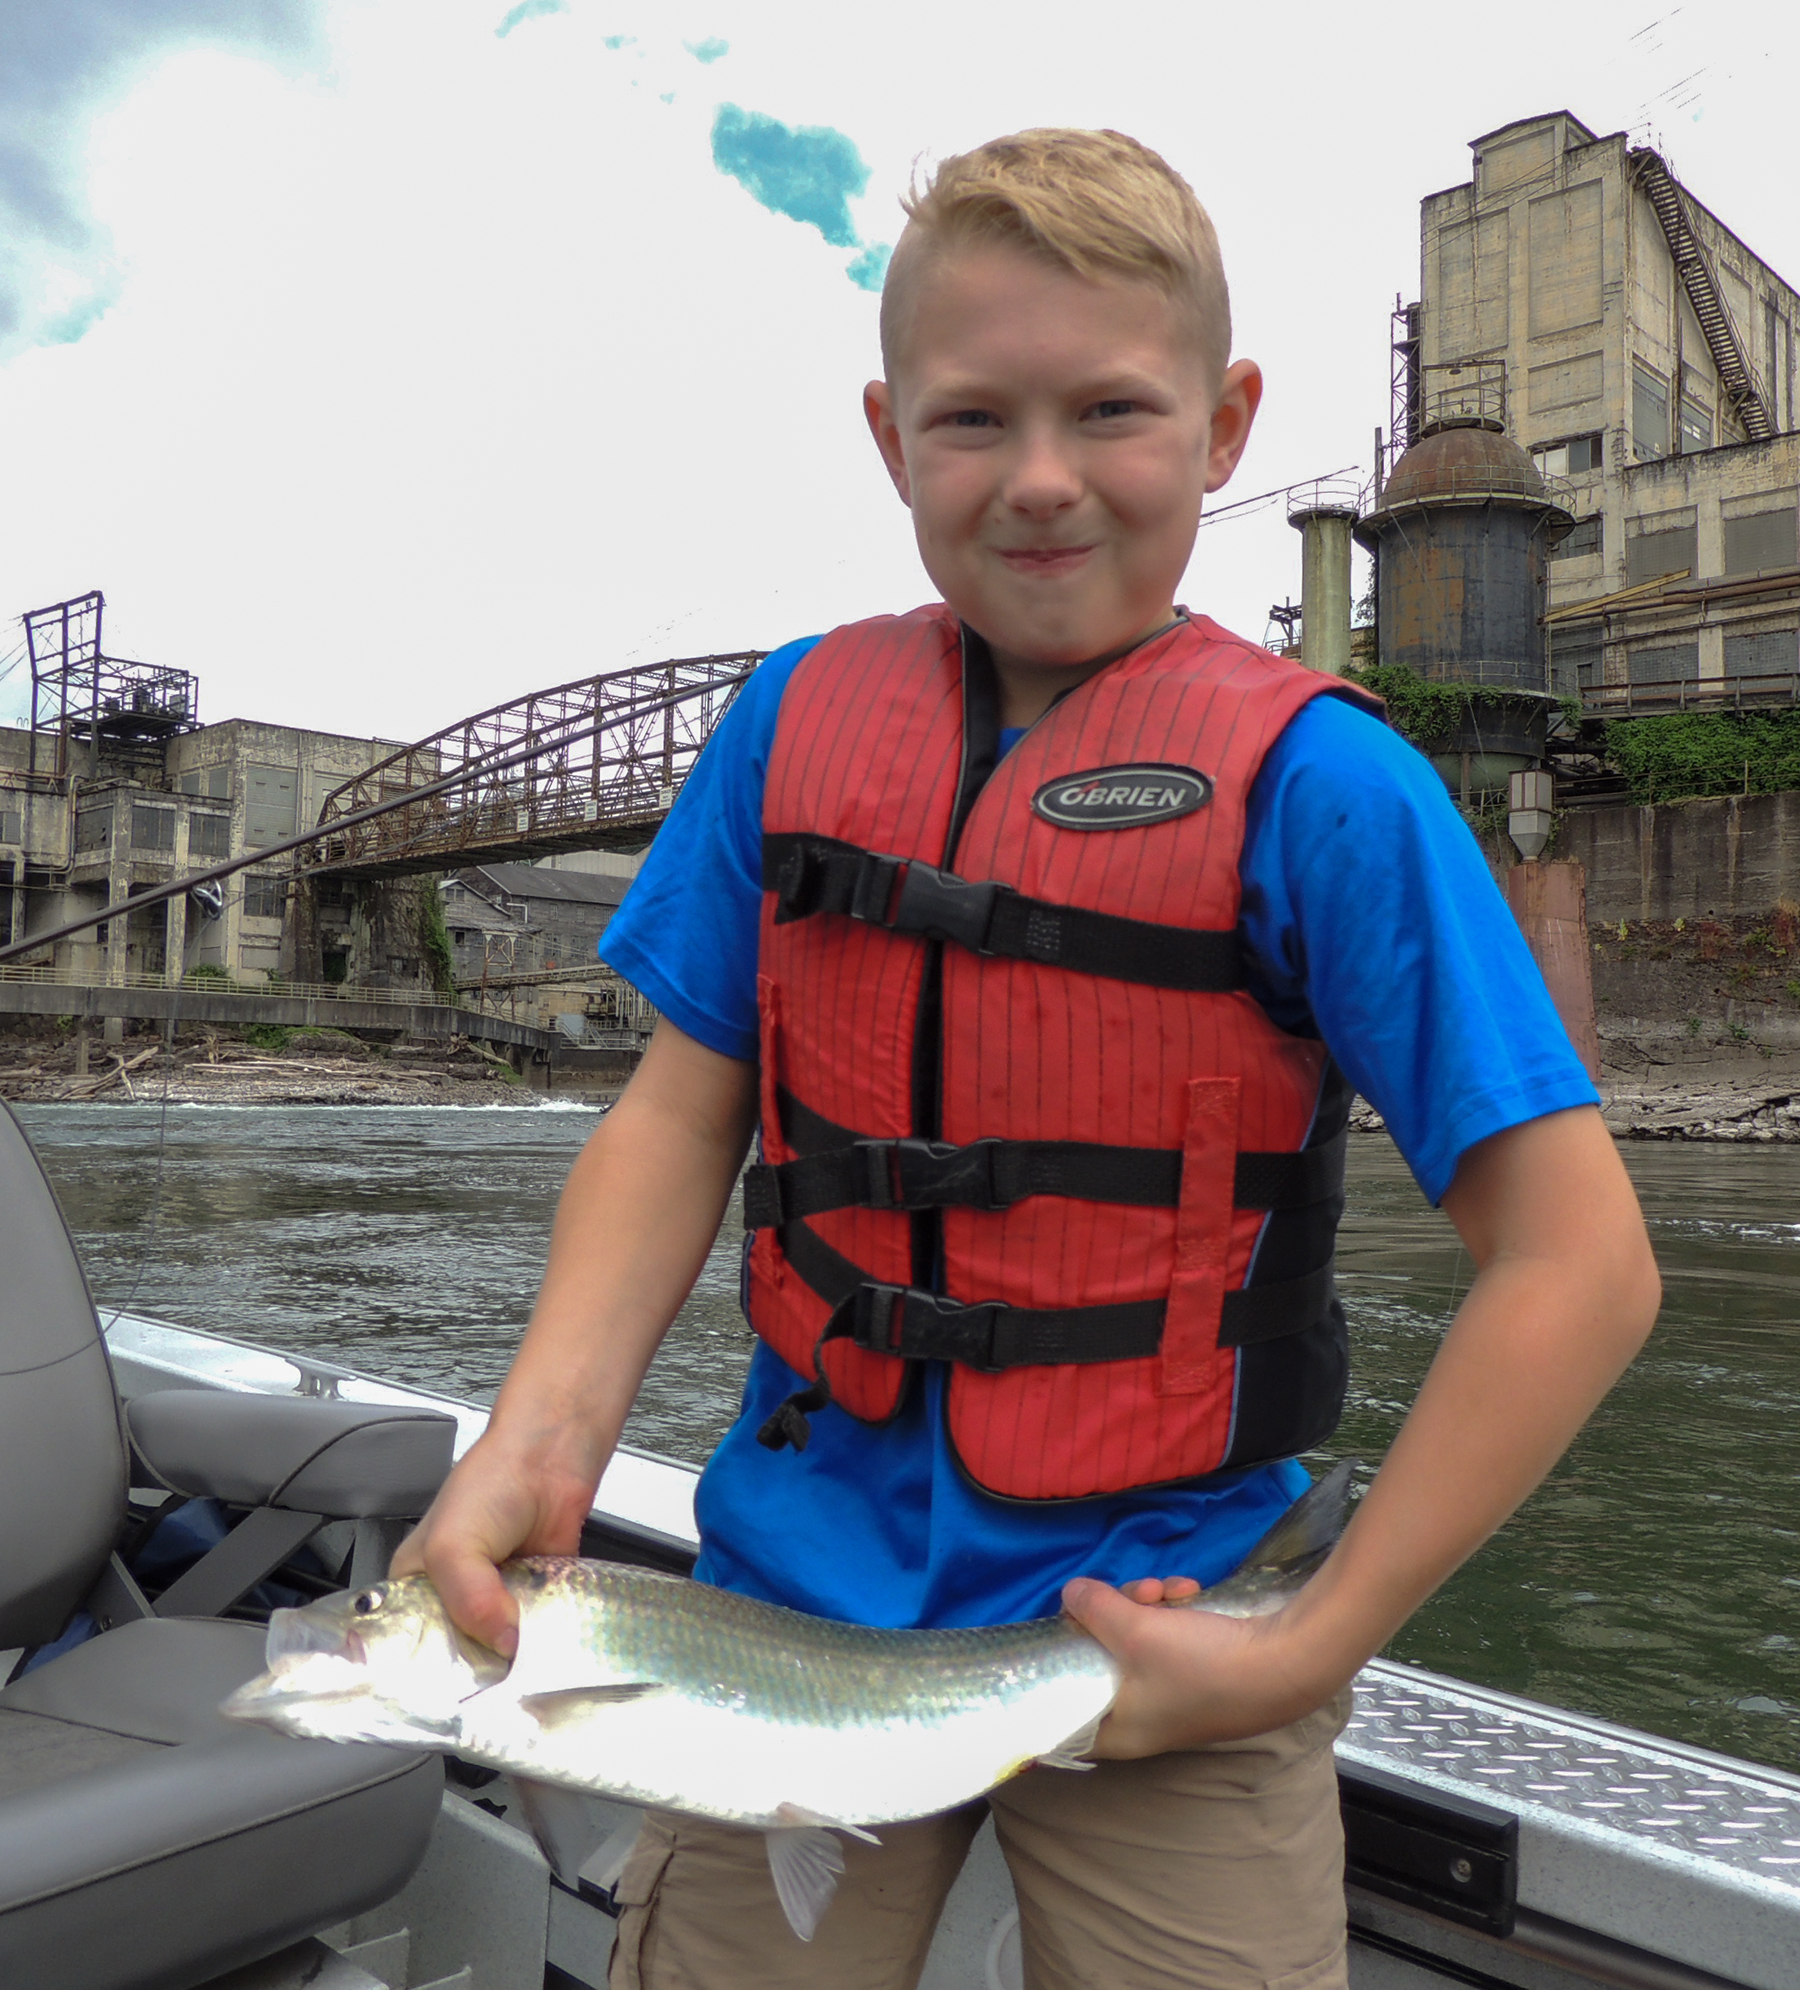 Young fair-haired boy in red lifejacket standing in boat on the Willamette River in Oregon City shows off his salmon catch.